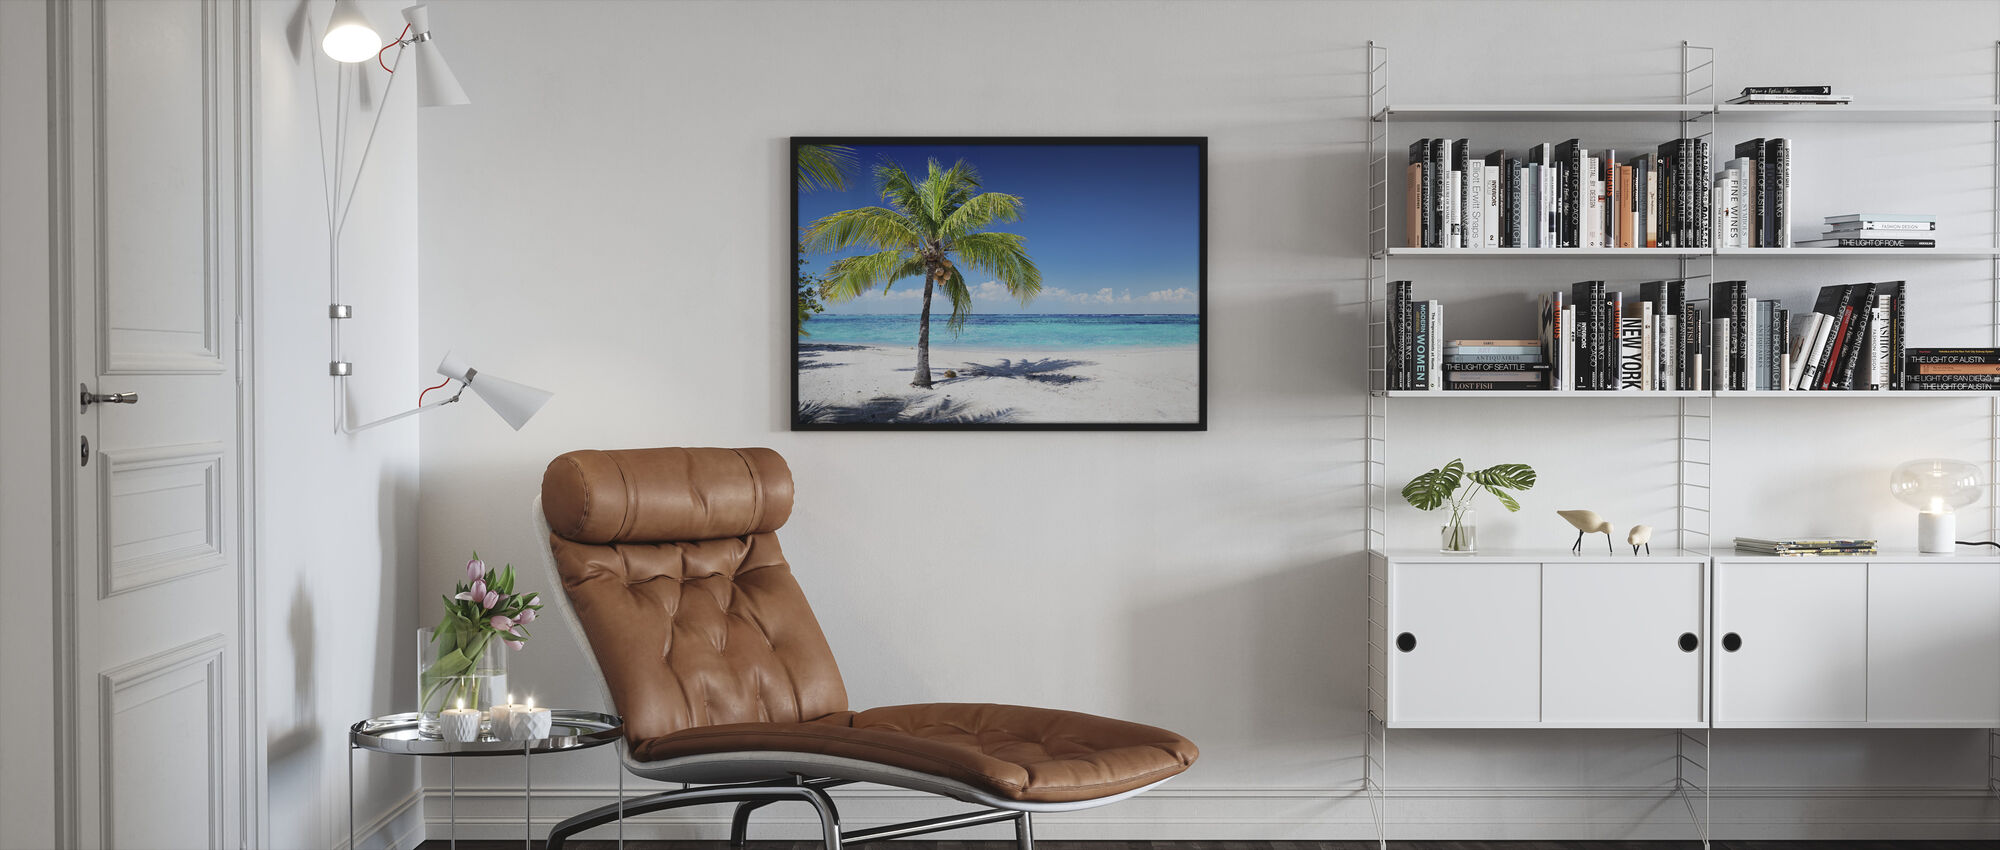 Coral Beach with Palm Tree - Framed print - Living Room